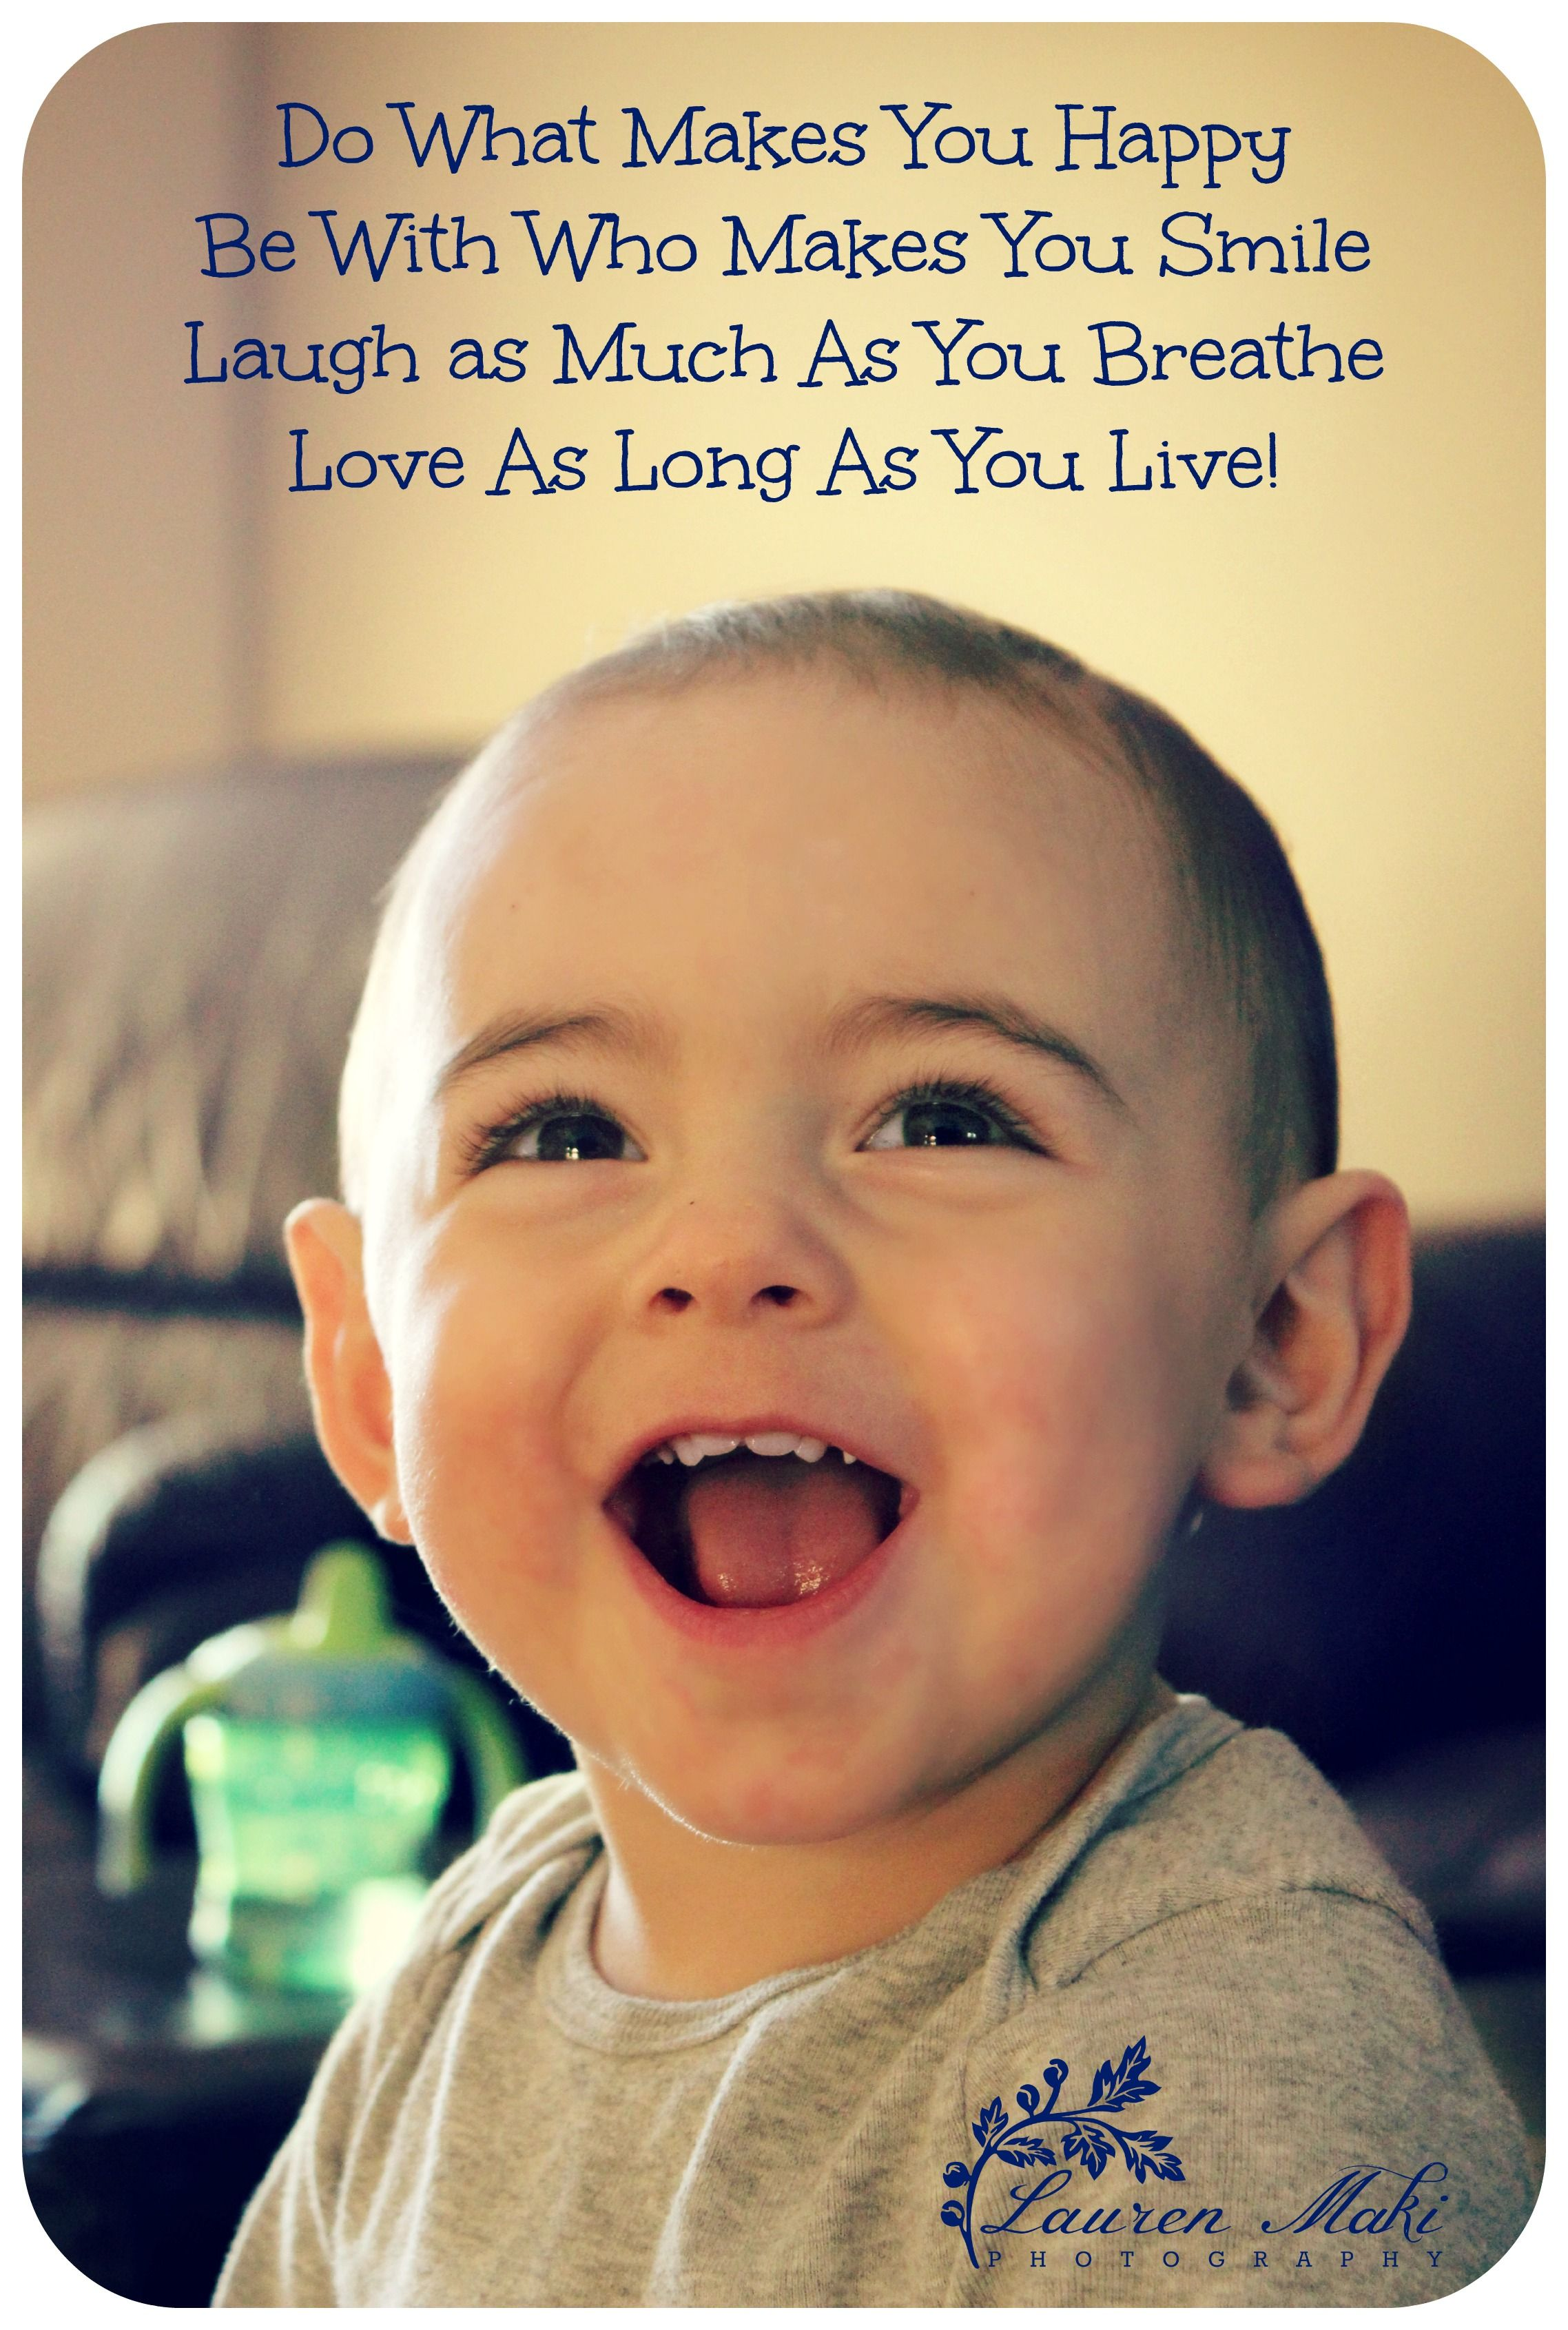 live love laugh Happy boy baby toddler smile